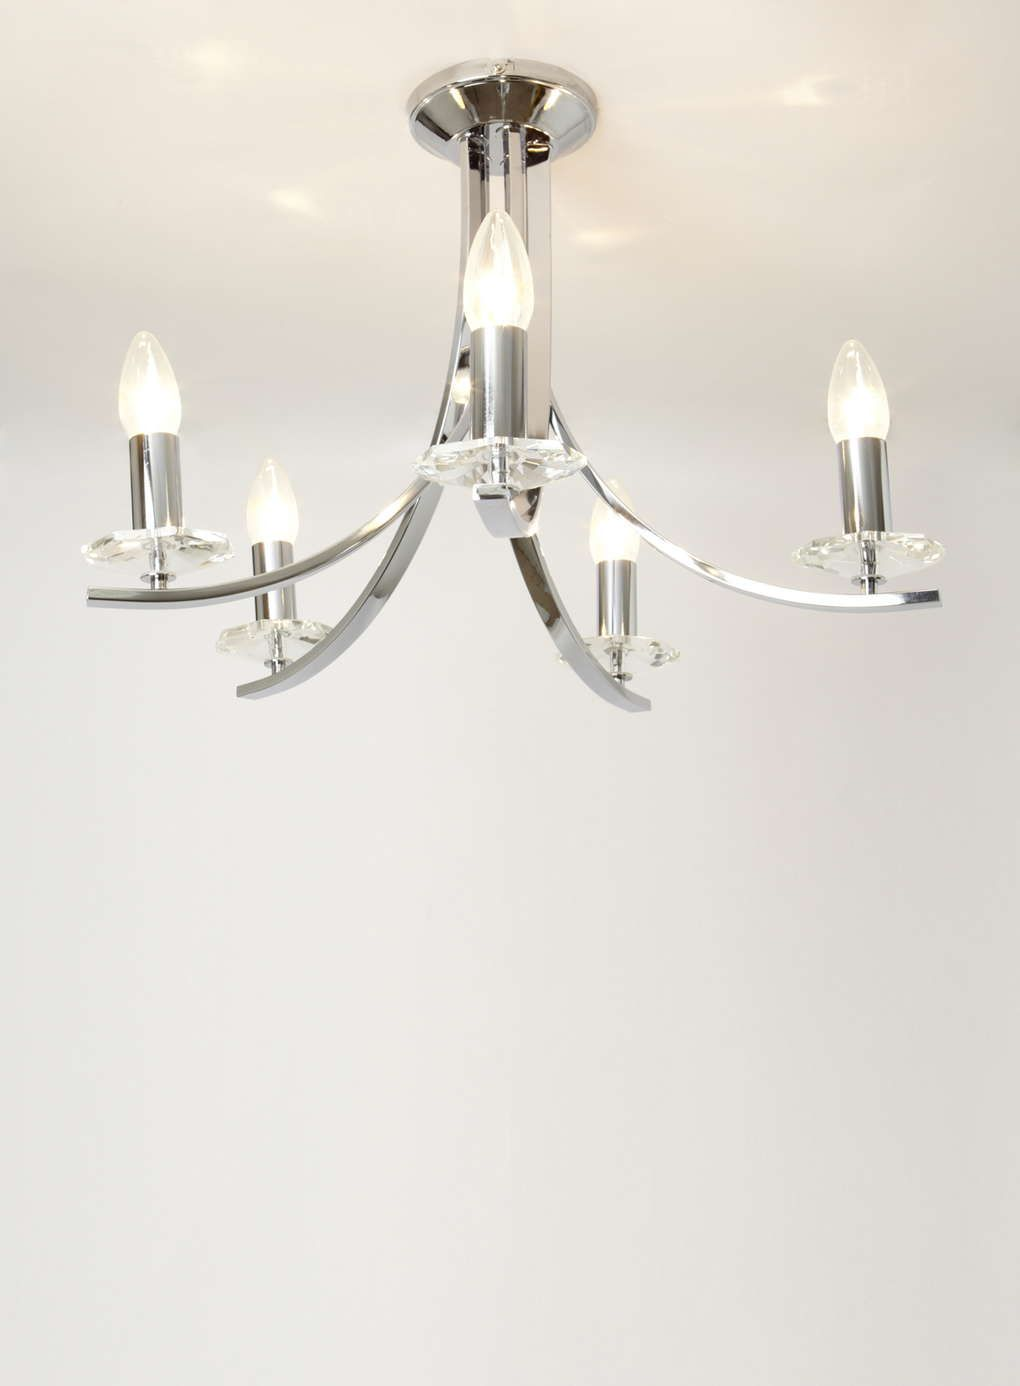 Chrome malone Chandelier - Ceiling Lights - Home, Lighting ...